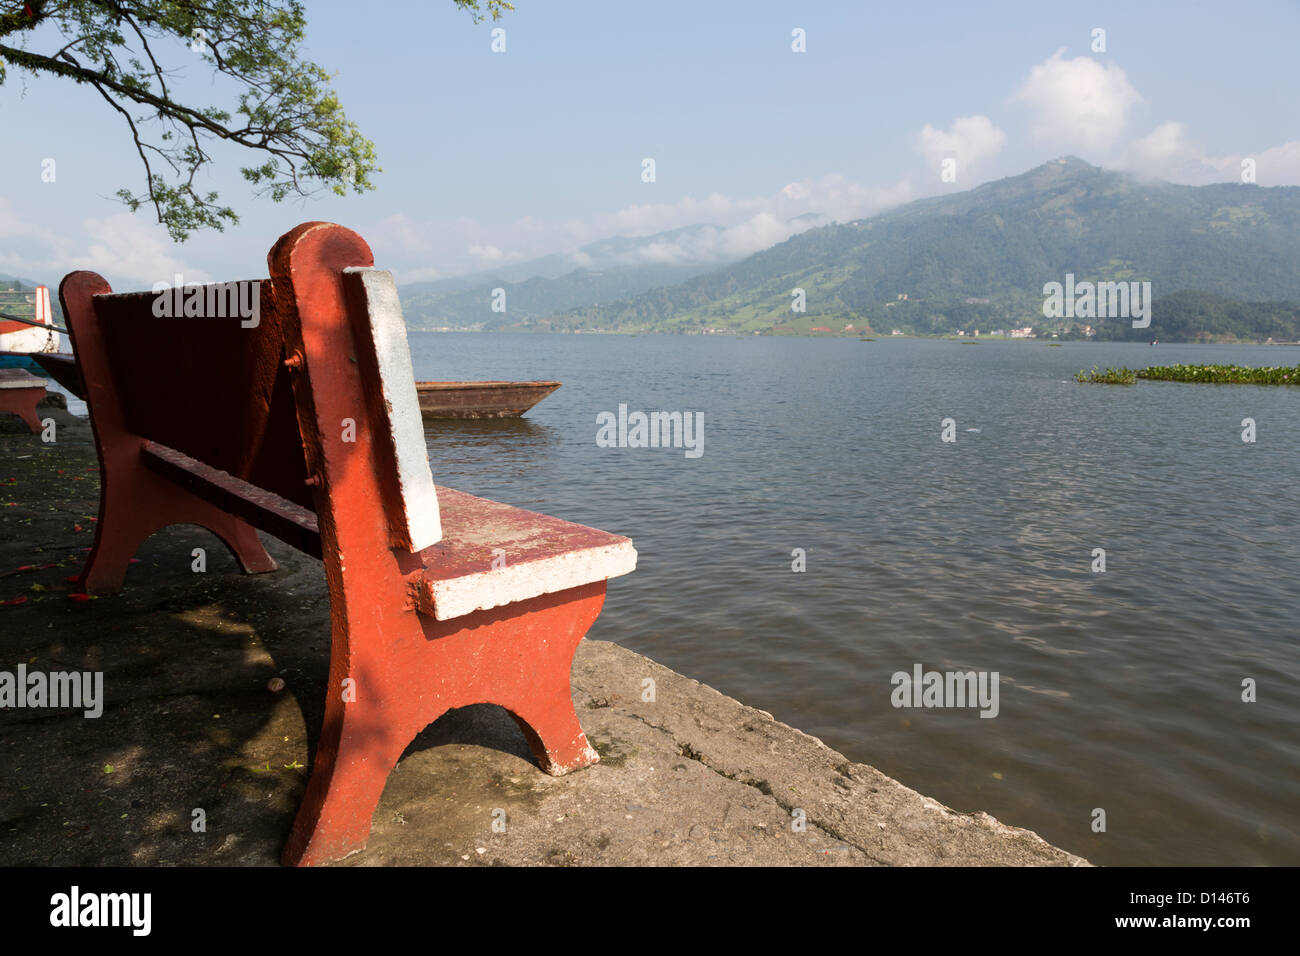 Phewa (or Fewa) lake in Pokhara, Nepal - Stock Image